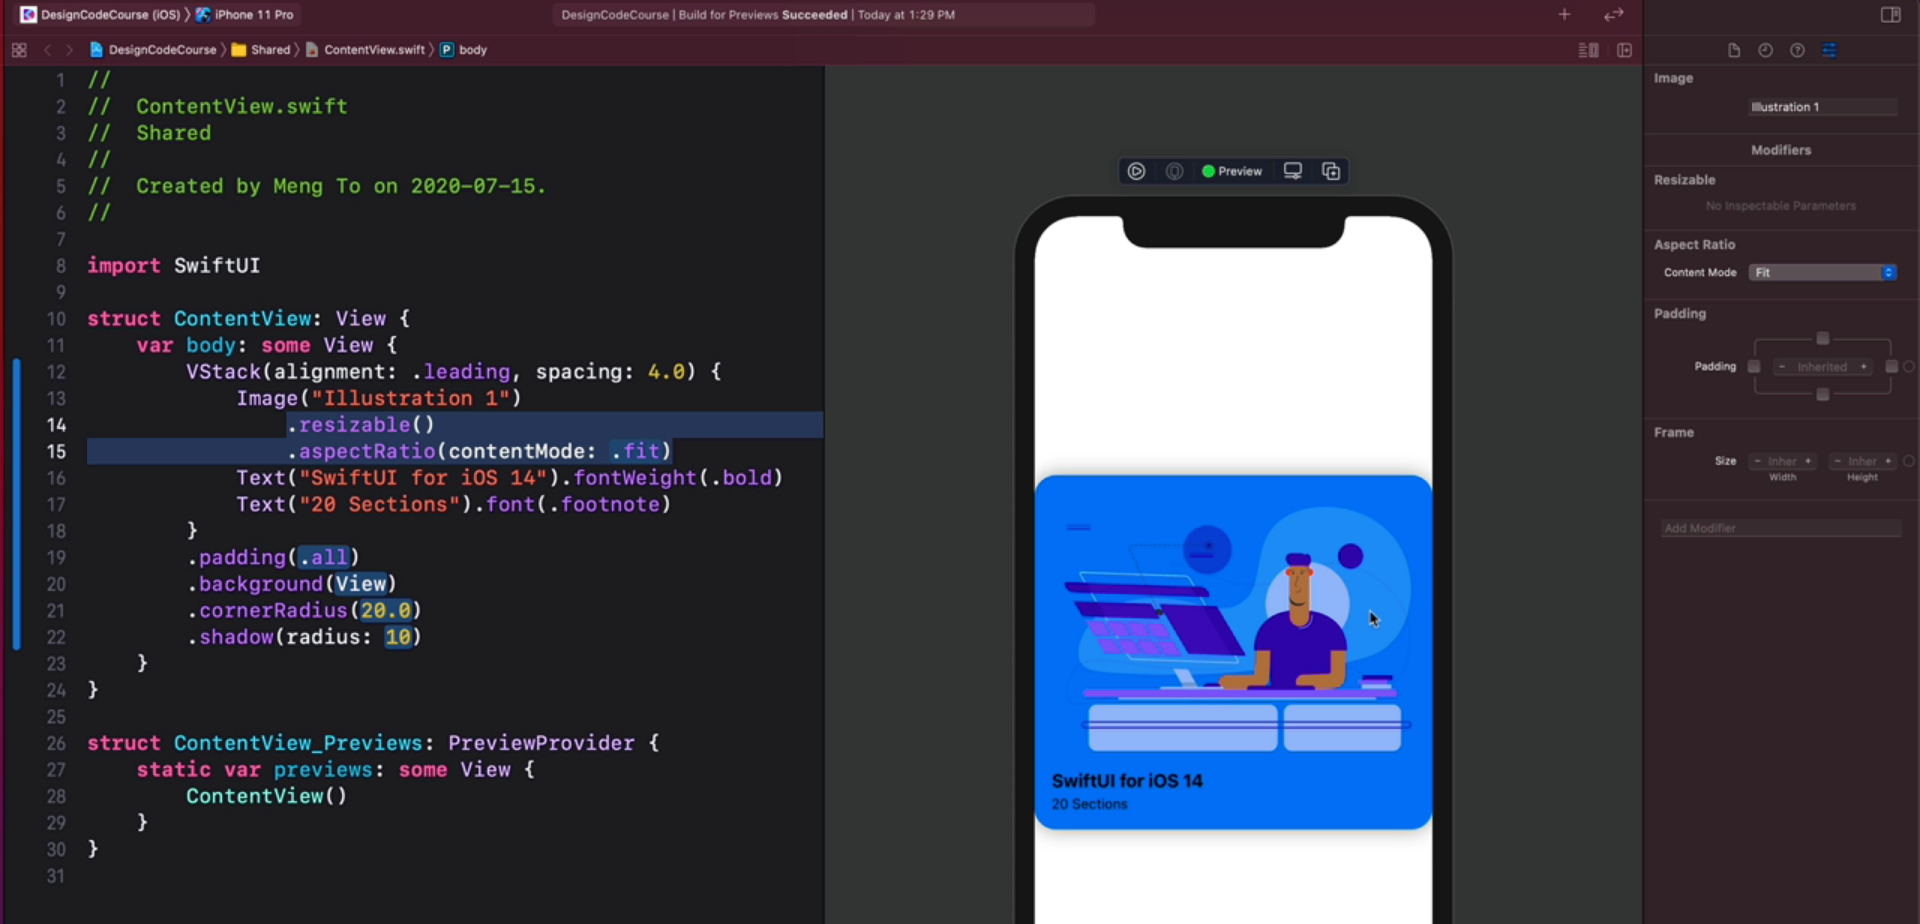 swiftui-section2-7